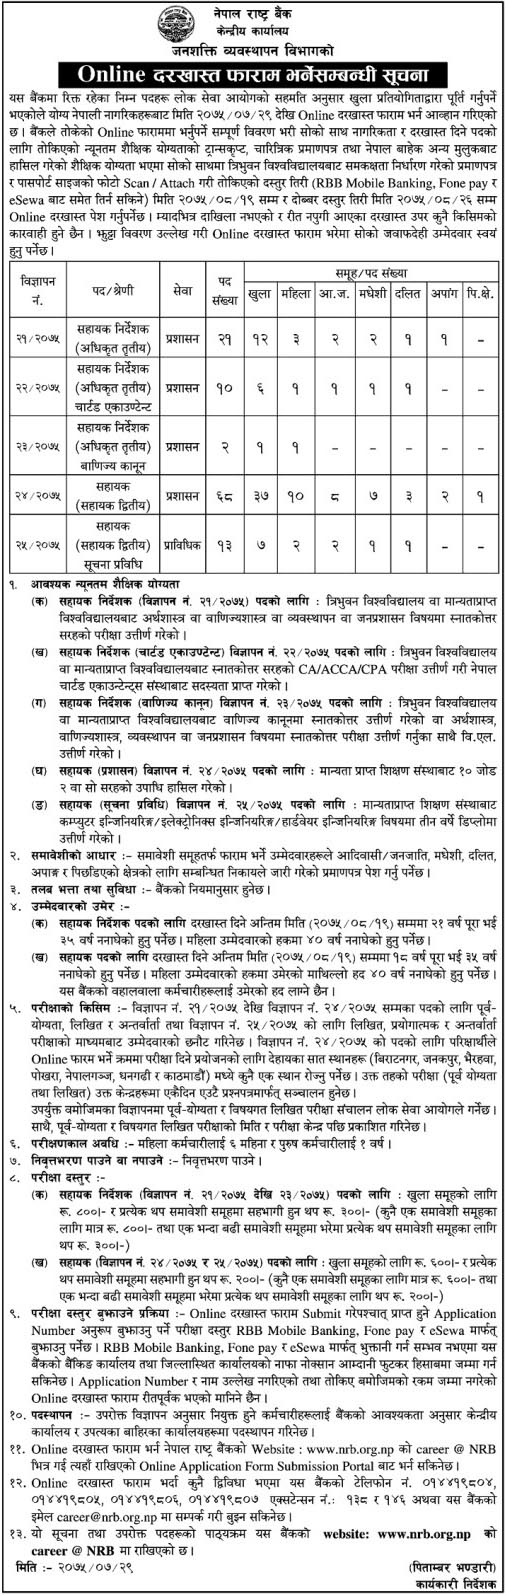 Nepal Rastra Bank Vacancy Announcement for Various Posts